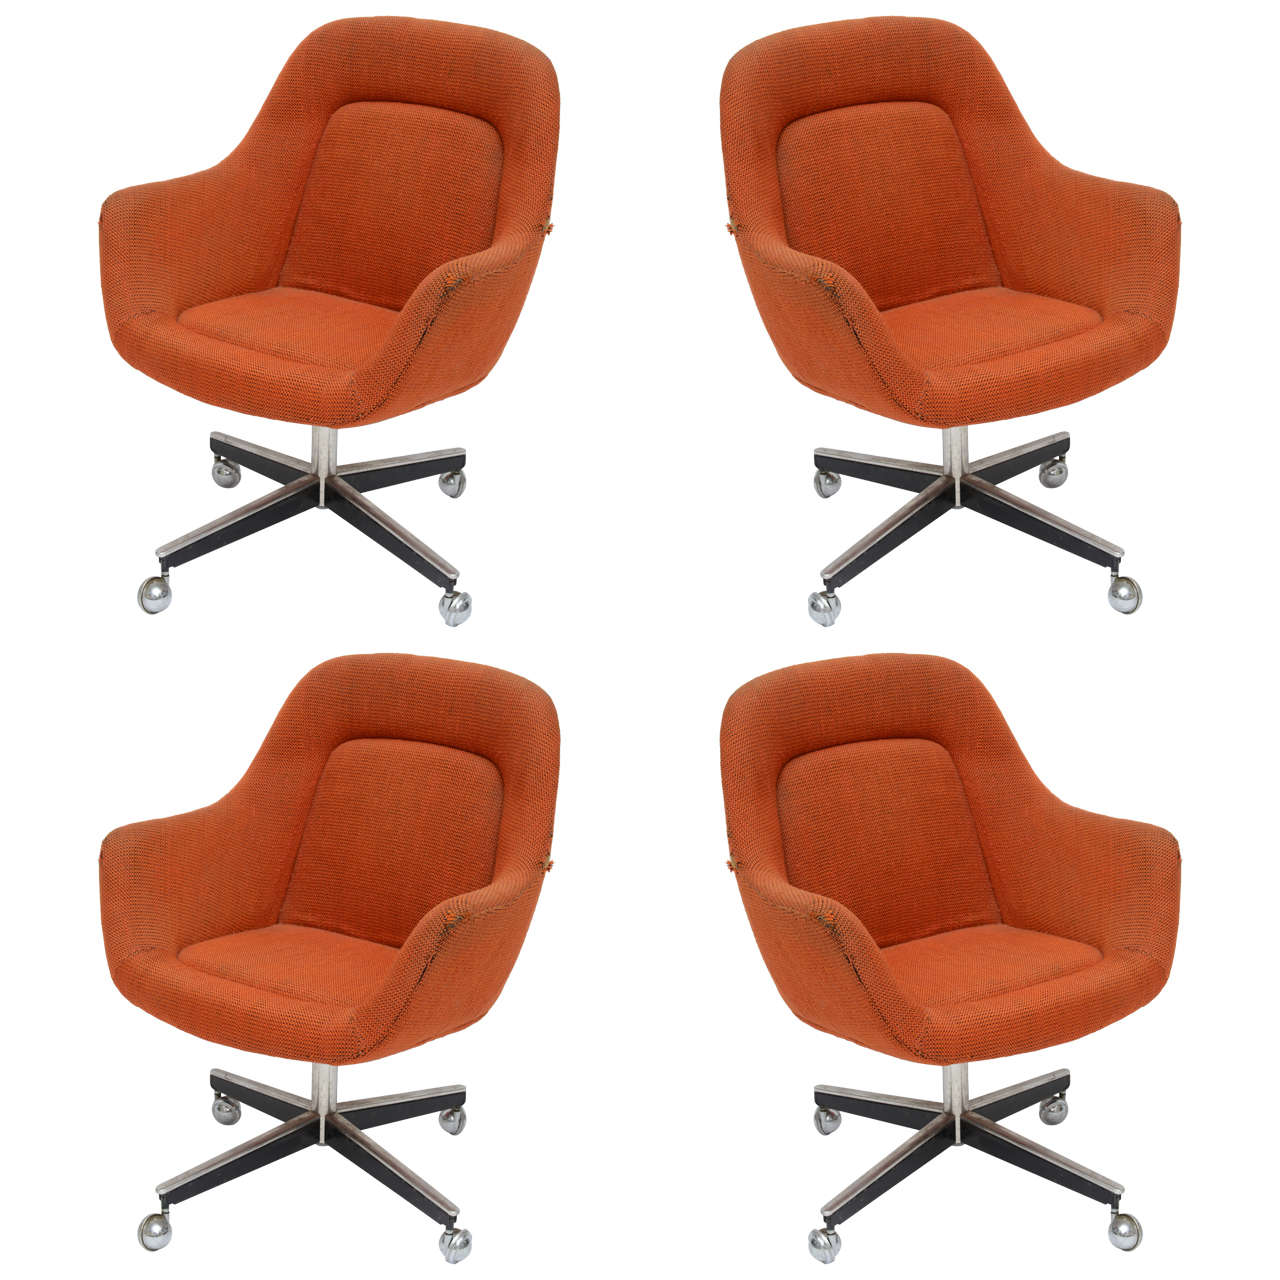 Max Pearson For Knoll Oversized Roller Chairs 1970s For Sale